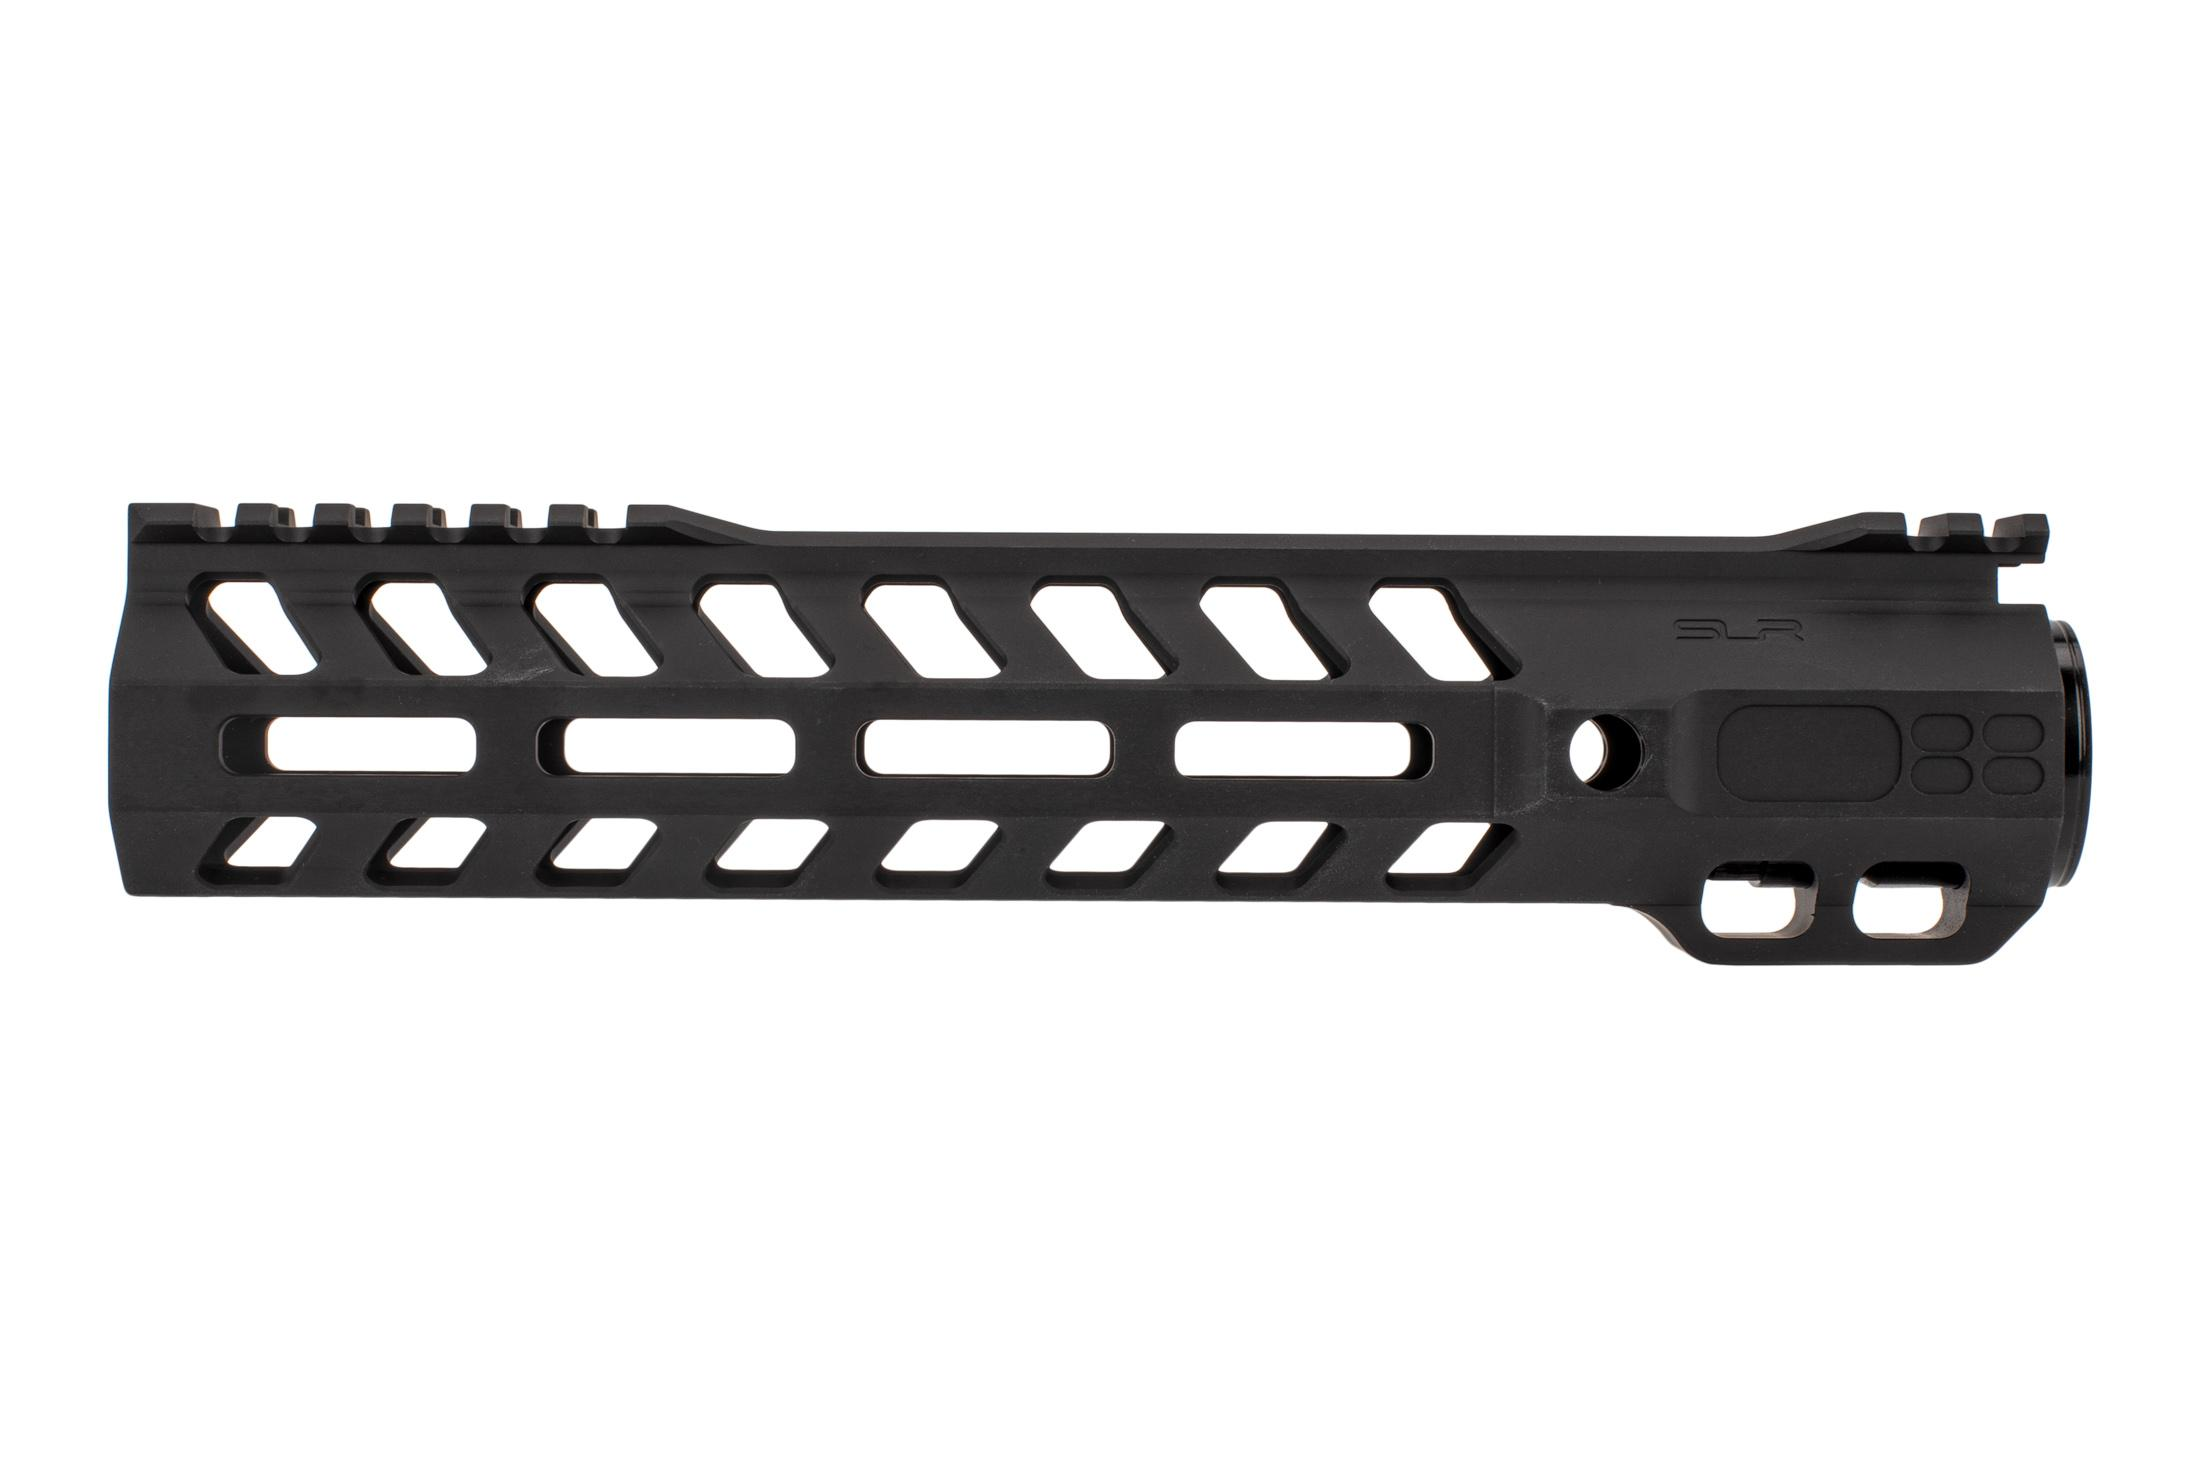 SLR Rifleworks M-LOK Ion Heavy Duty rail is 9.7 for AR15 with black anodized finish and interrupted top rail